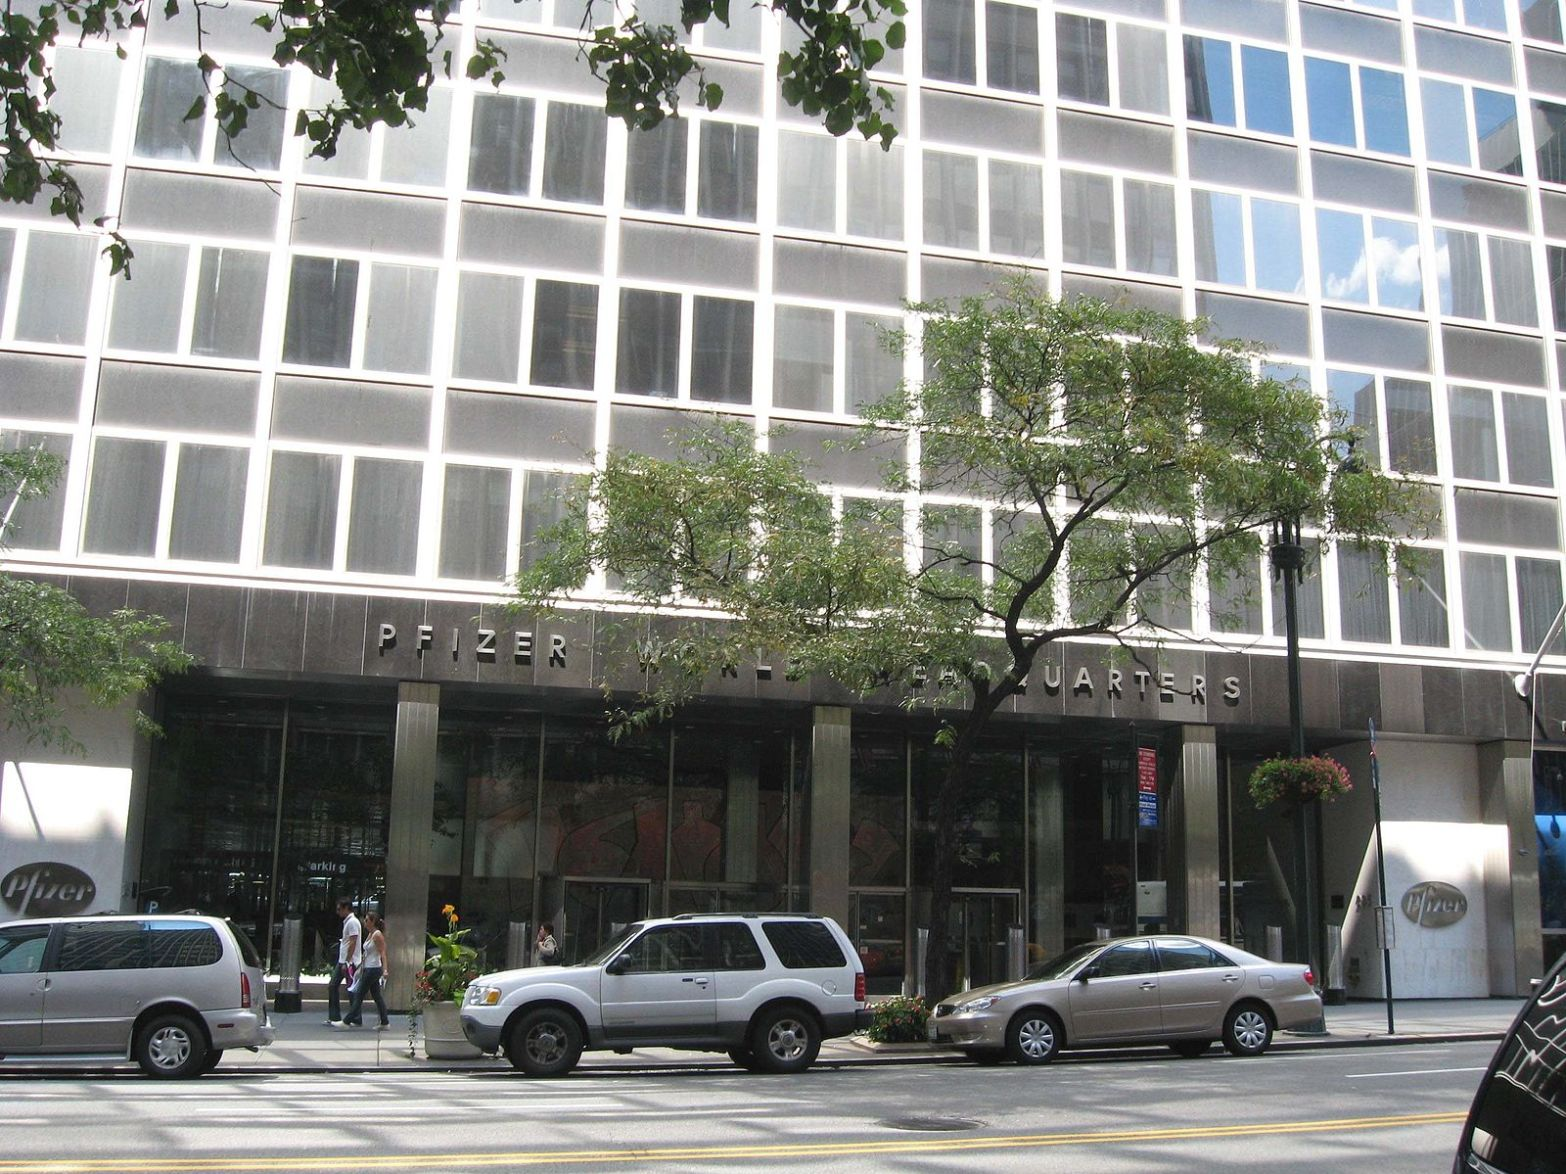 Pfizer world headquarters in New York City, USA. Pfizer is one of two COVID vaccine candidate manufacturers to request emergency use authorisation in India. Image credit: Jim.henderson, Public domain, via Wikimedia Commons